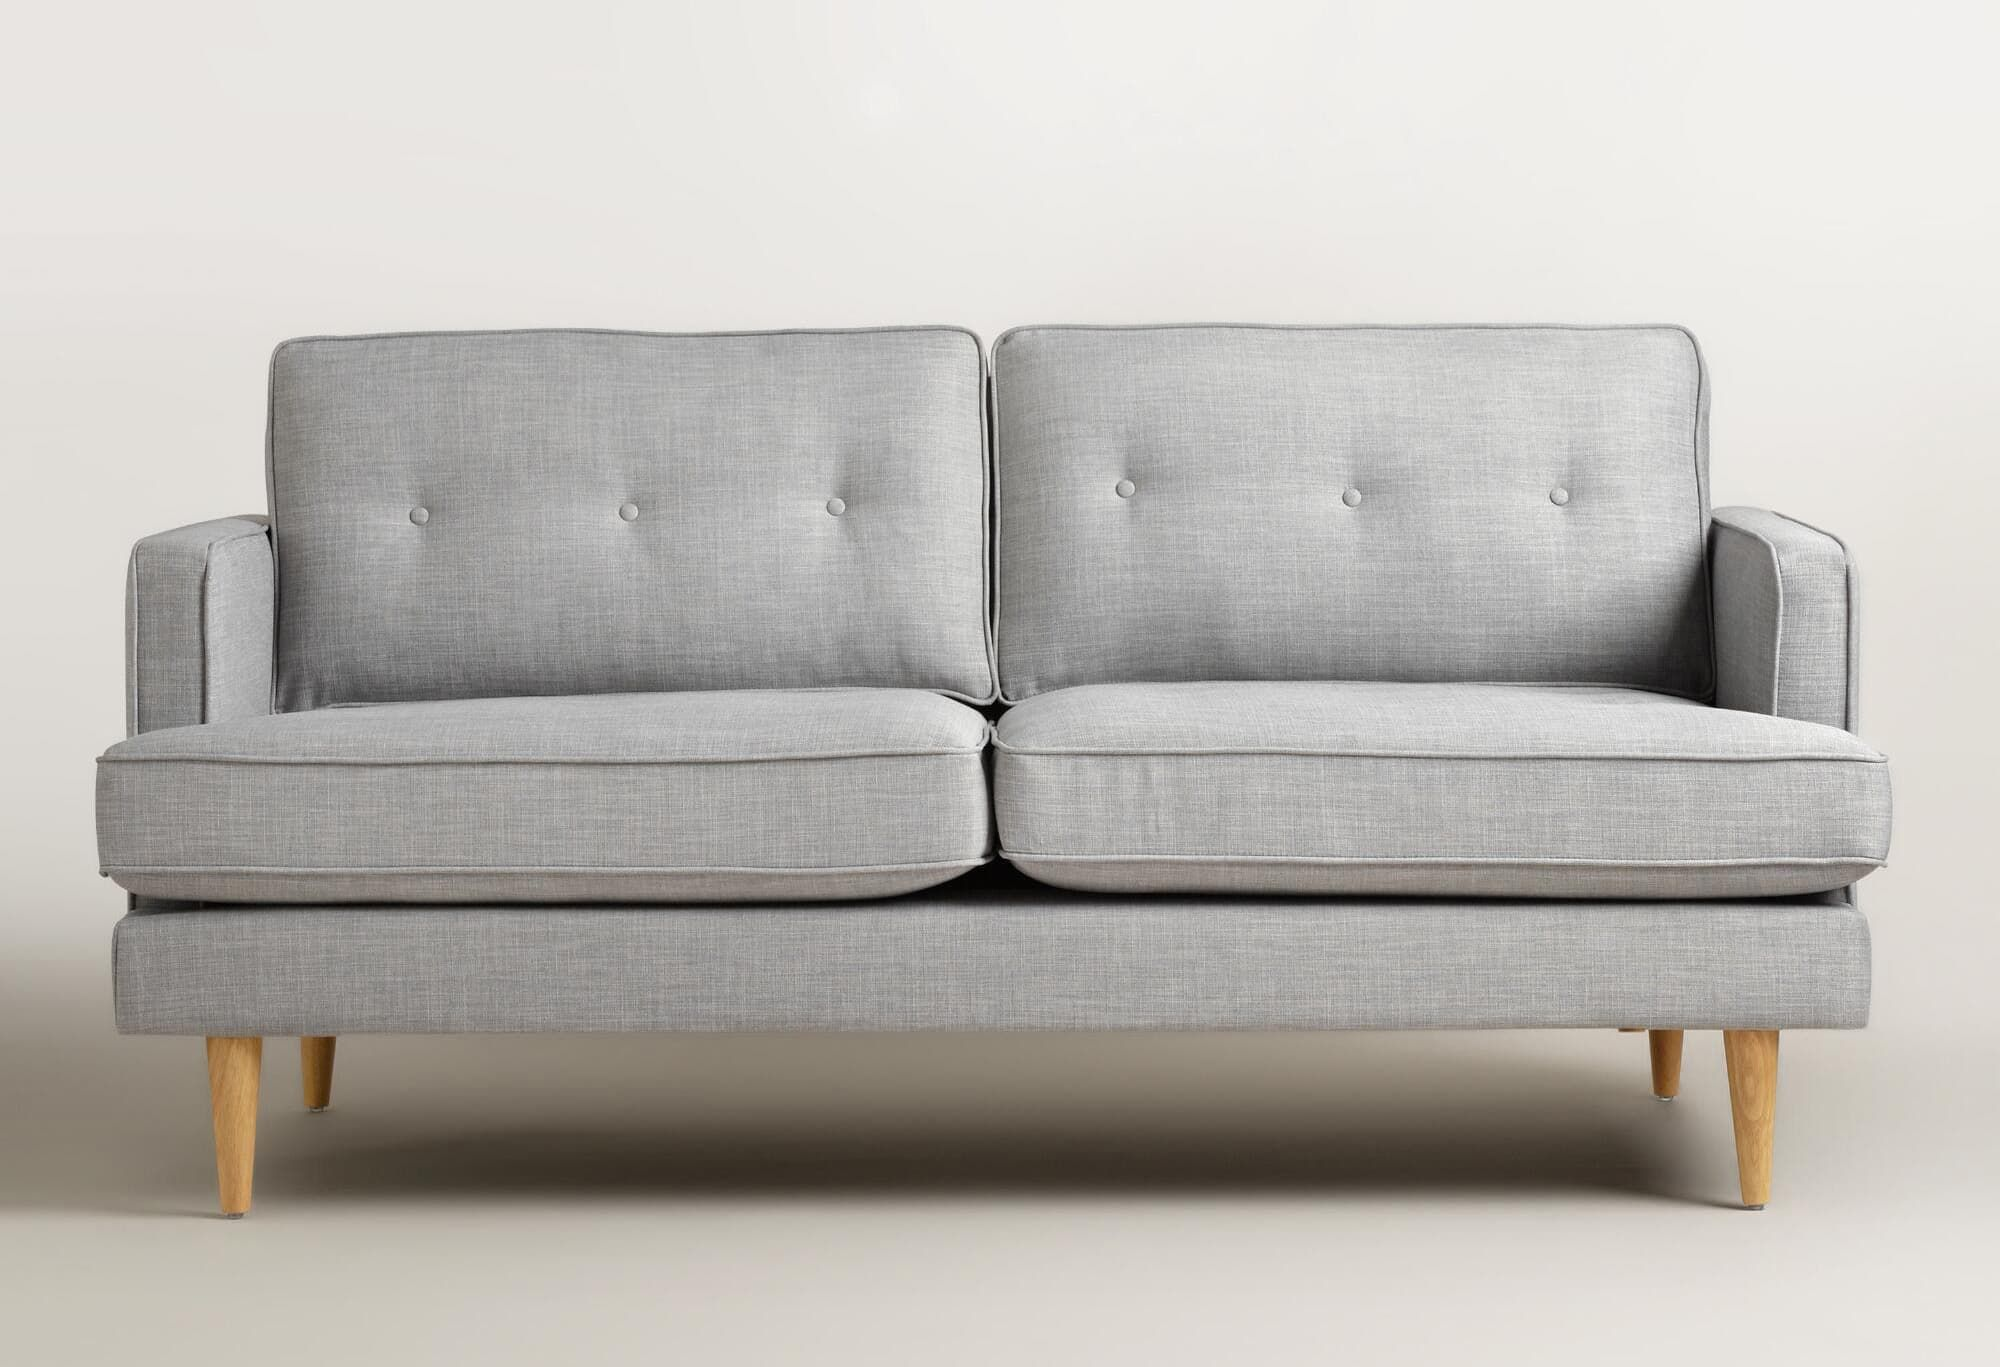 Gentil Top 10: The Best Sofas Under $800 U2014 Annual Guide 2016